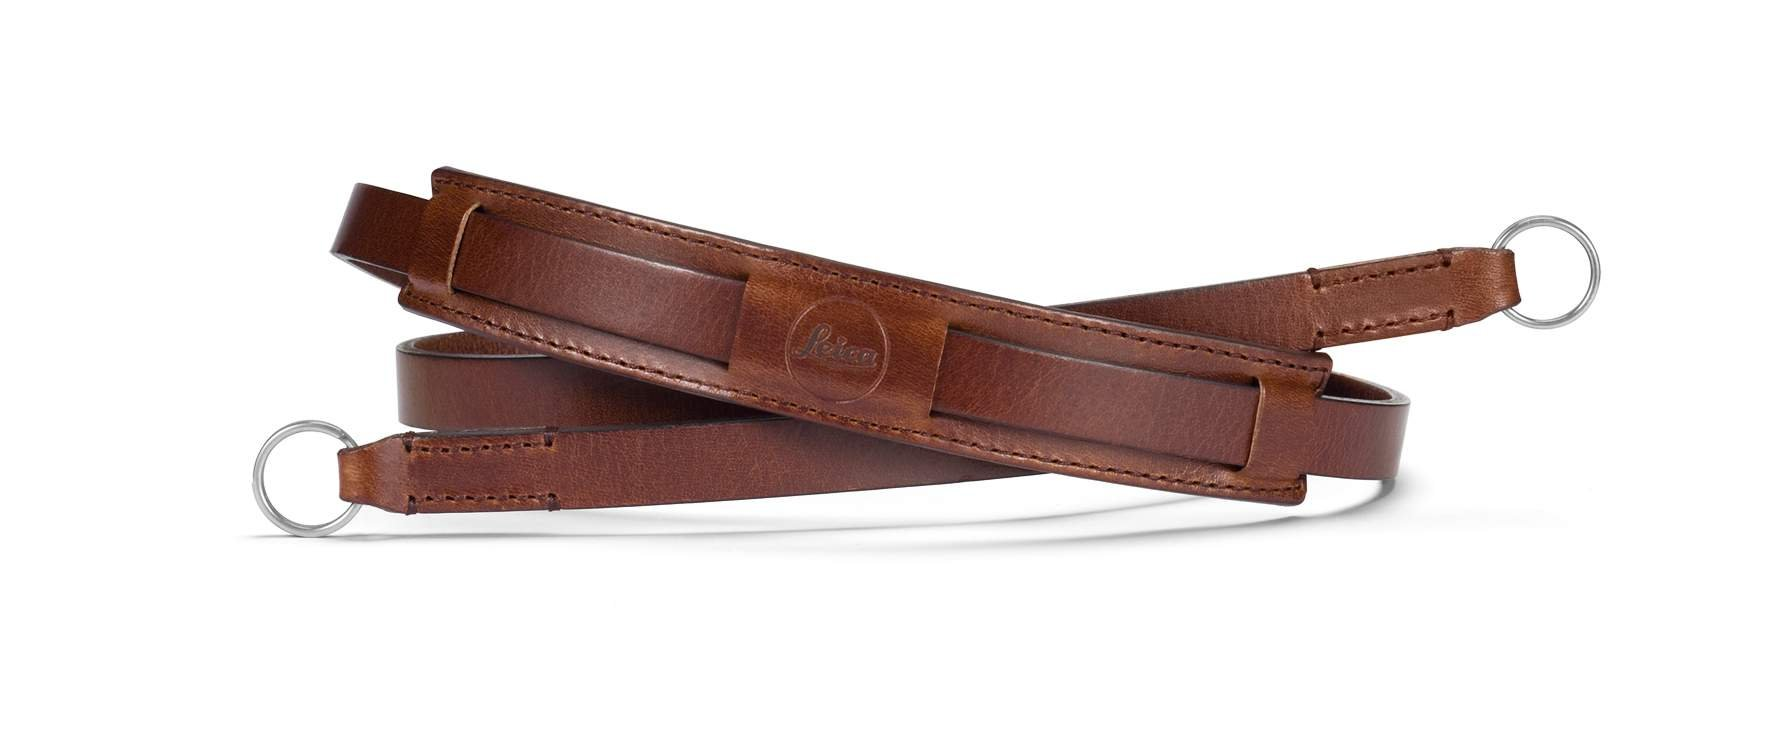 Leica Leather Neck Strap for The CL Cameras (Vintage Brown)